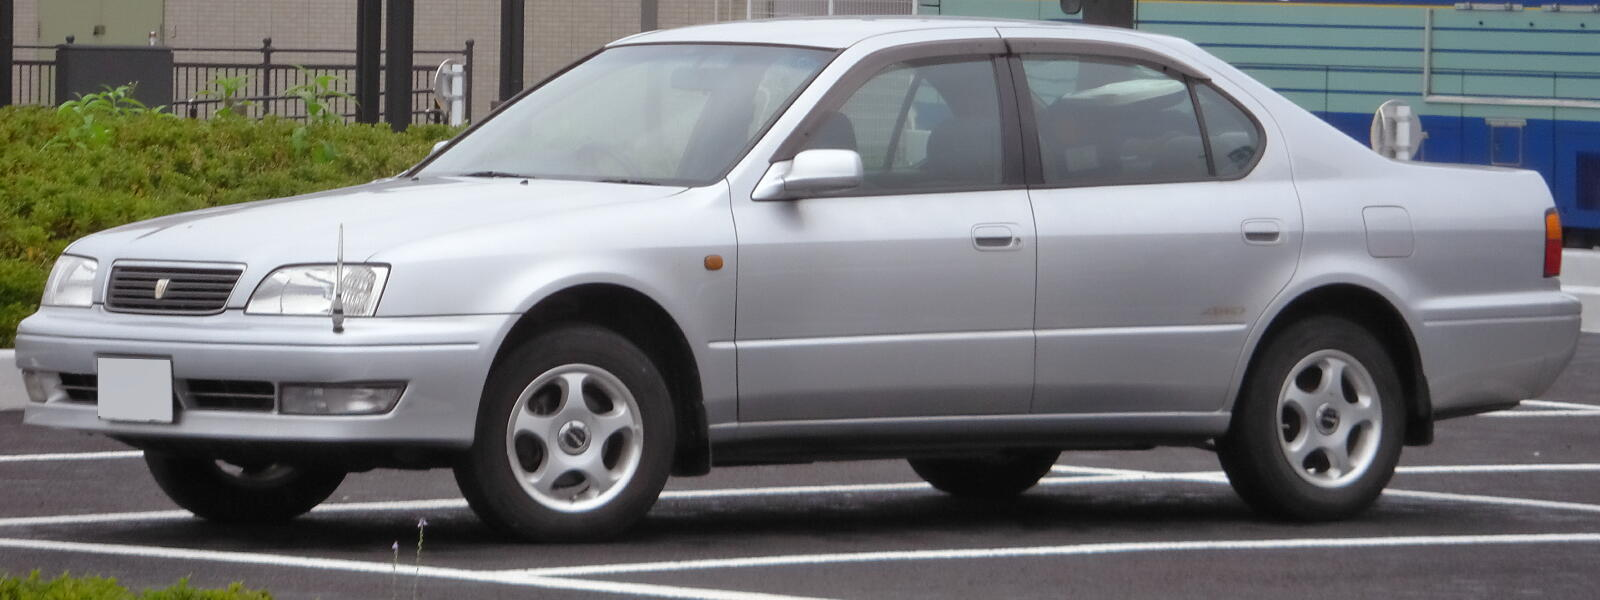 Toyota Camry 99px Image 5